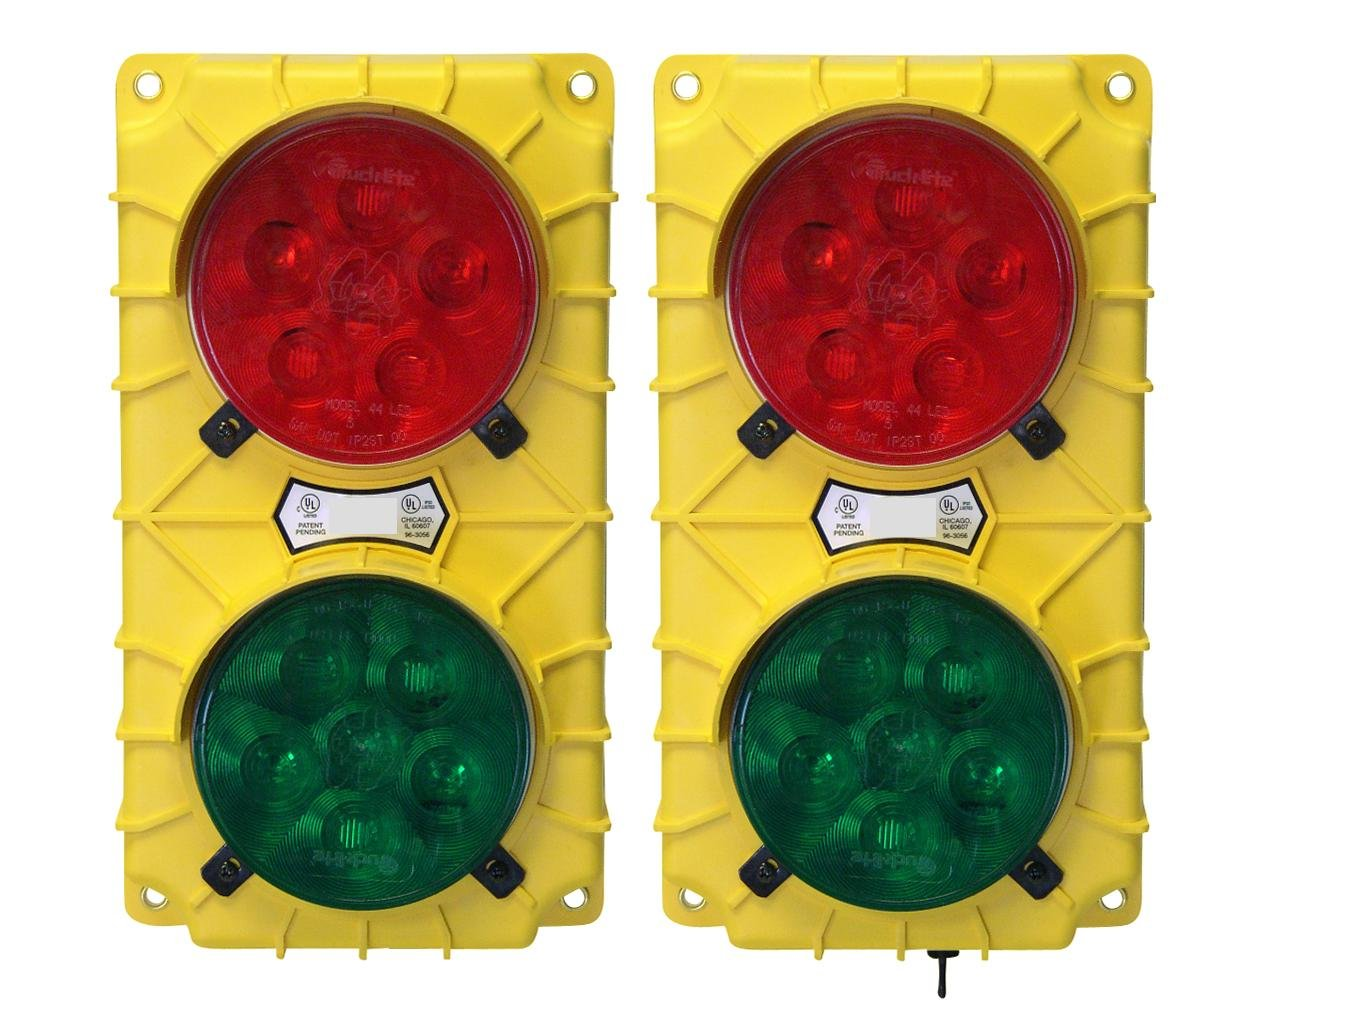 SG30 LED Stop and Go Light Signal System, 6-3/8-Inch Width X 11-3/8-Inch Height X 3-3/4-Inch Depth